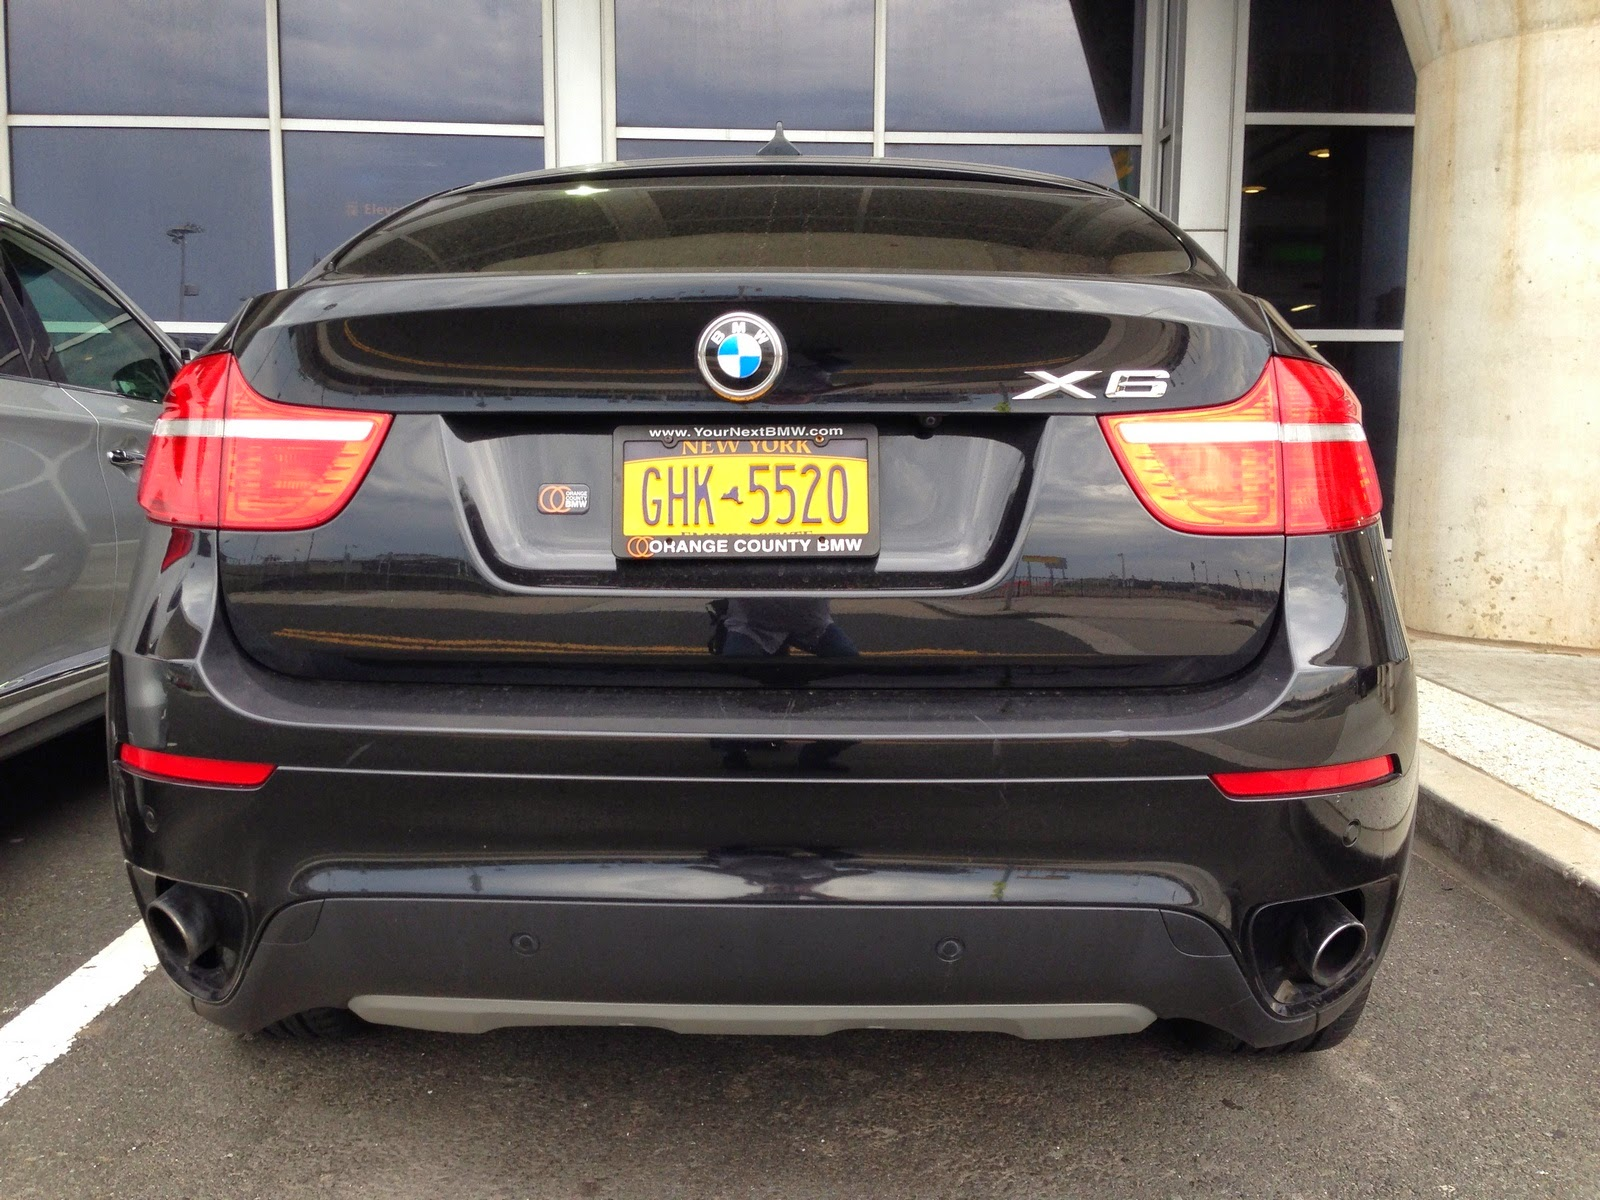 Vehicle Registration Plates Of Bmw X6 Amp Mercedes Ml